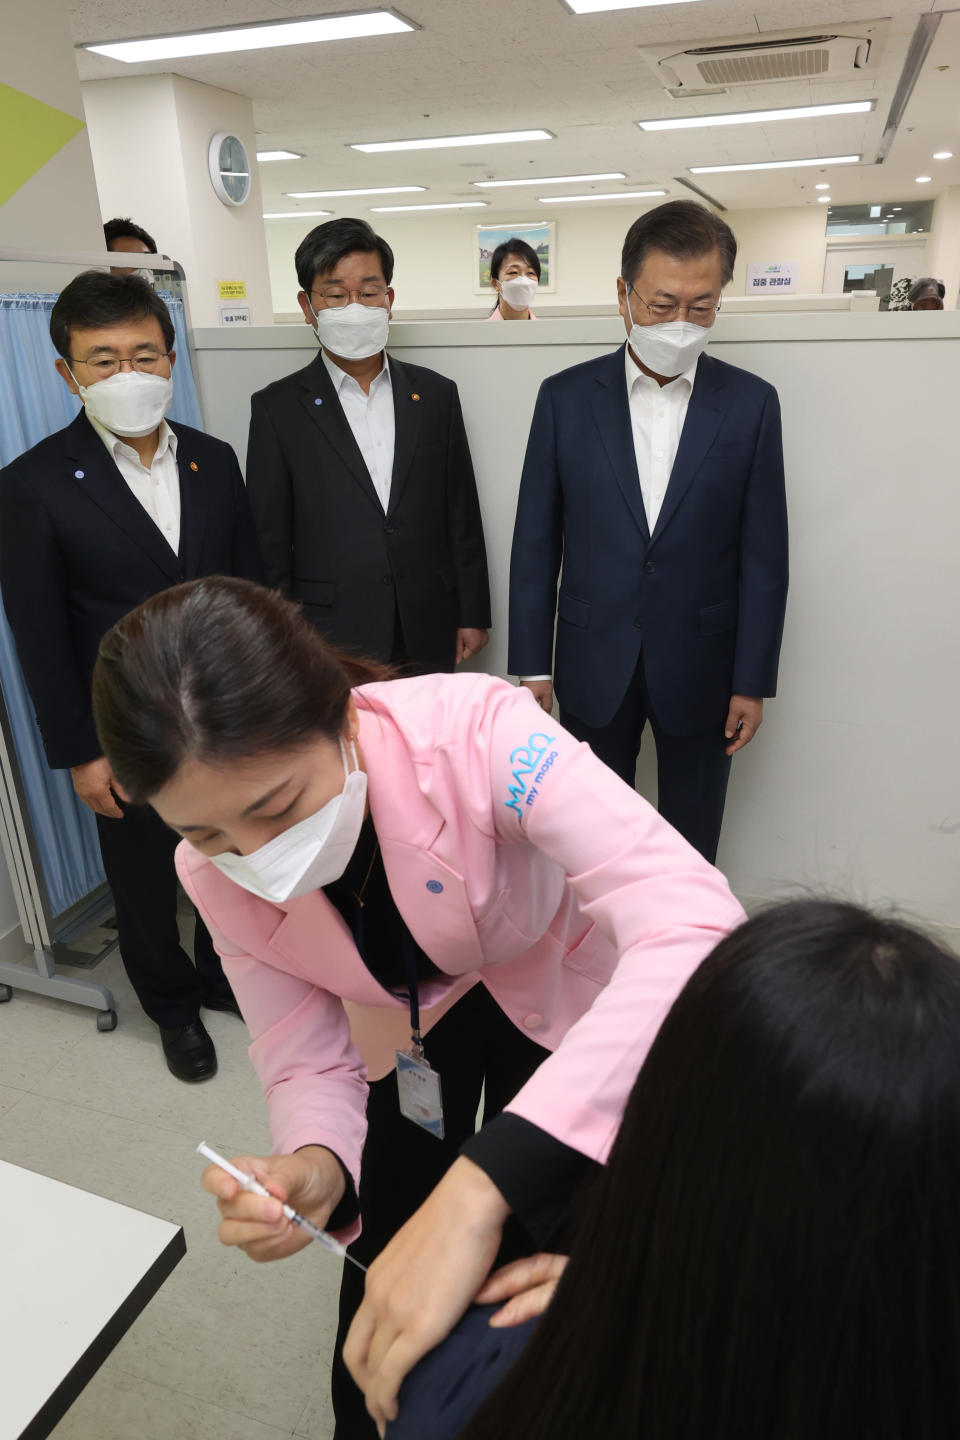 South Korean President Moon Jae-in, rear right, watches a doctor receives a shot of AstraZeneca vaccine at a public health center in Seoul, South Korea, Friday, Feb. 26, 2021. South Korea on Friday administered its first available shots of coronavirus vaccines to people at long-term care facilities, launching a mass immunization campaign that health authorities hope will restore some level of normalcy by the end of the year.(Choe Jae-koo/Yonhap via AP)